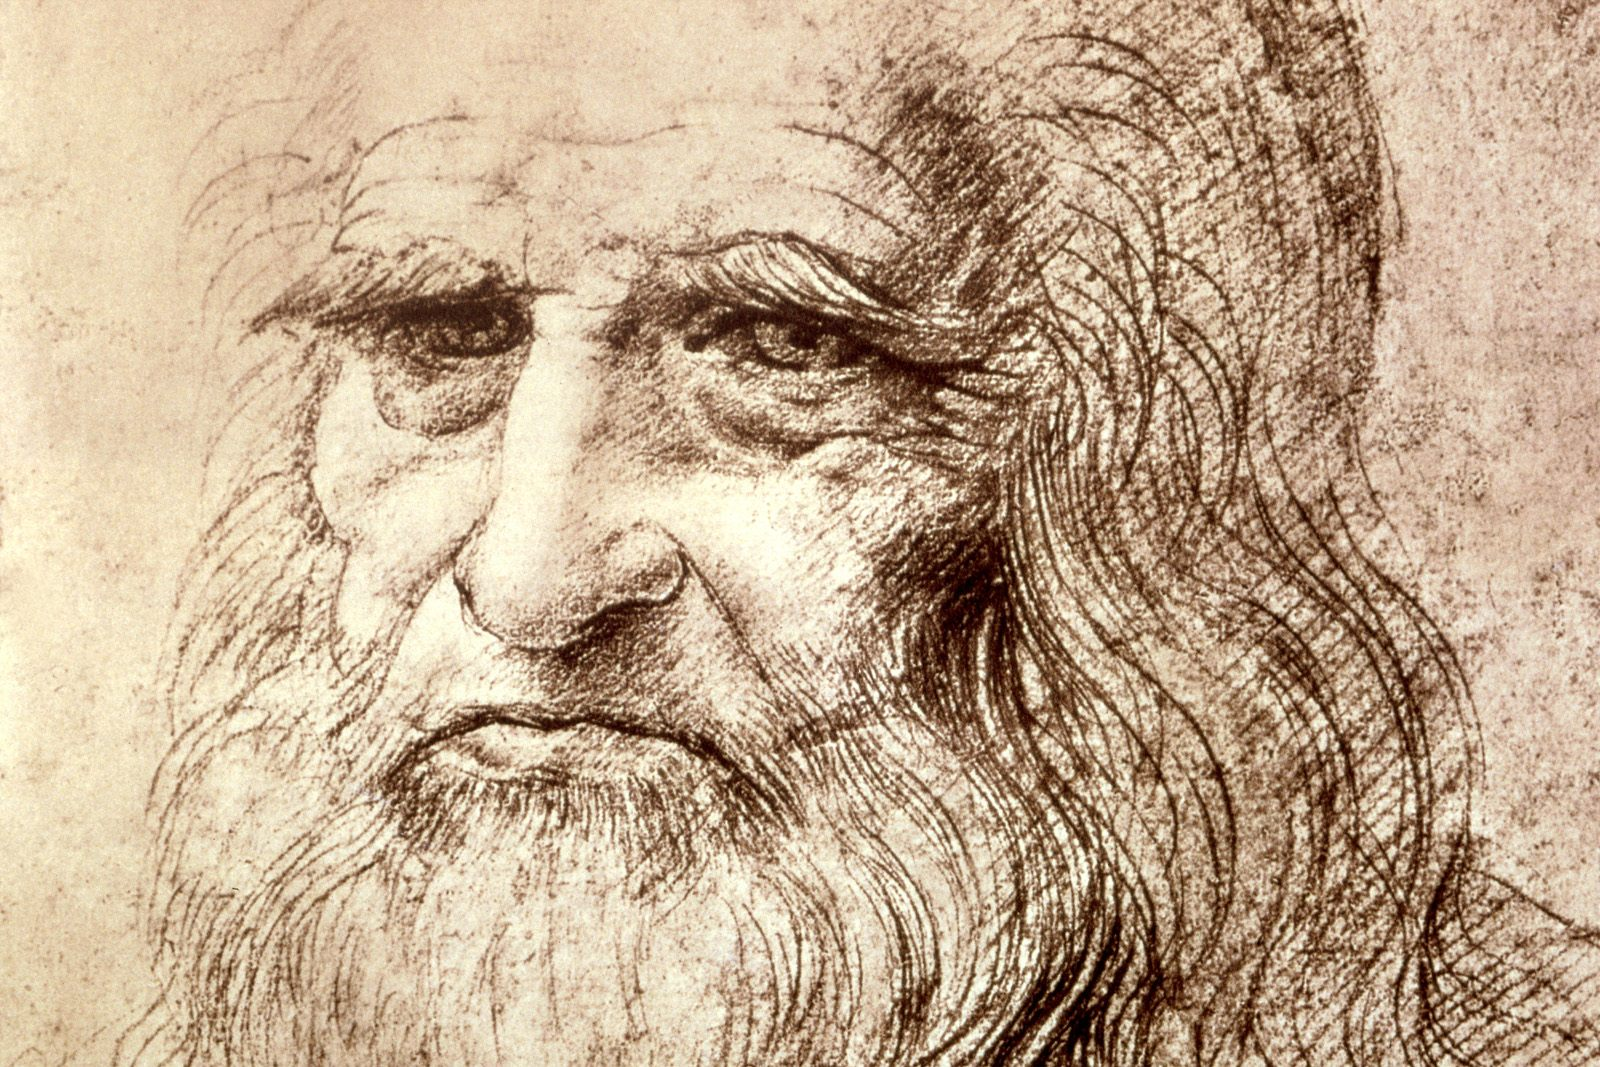 Self-Portrait-in-Old-Age,-Leonardo-da-Vinci,-1512-1600x120.jpg